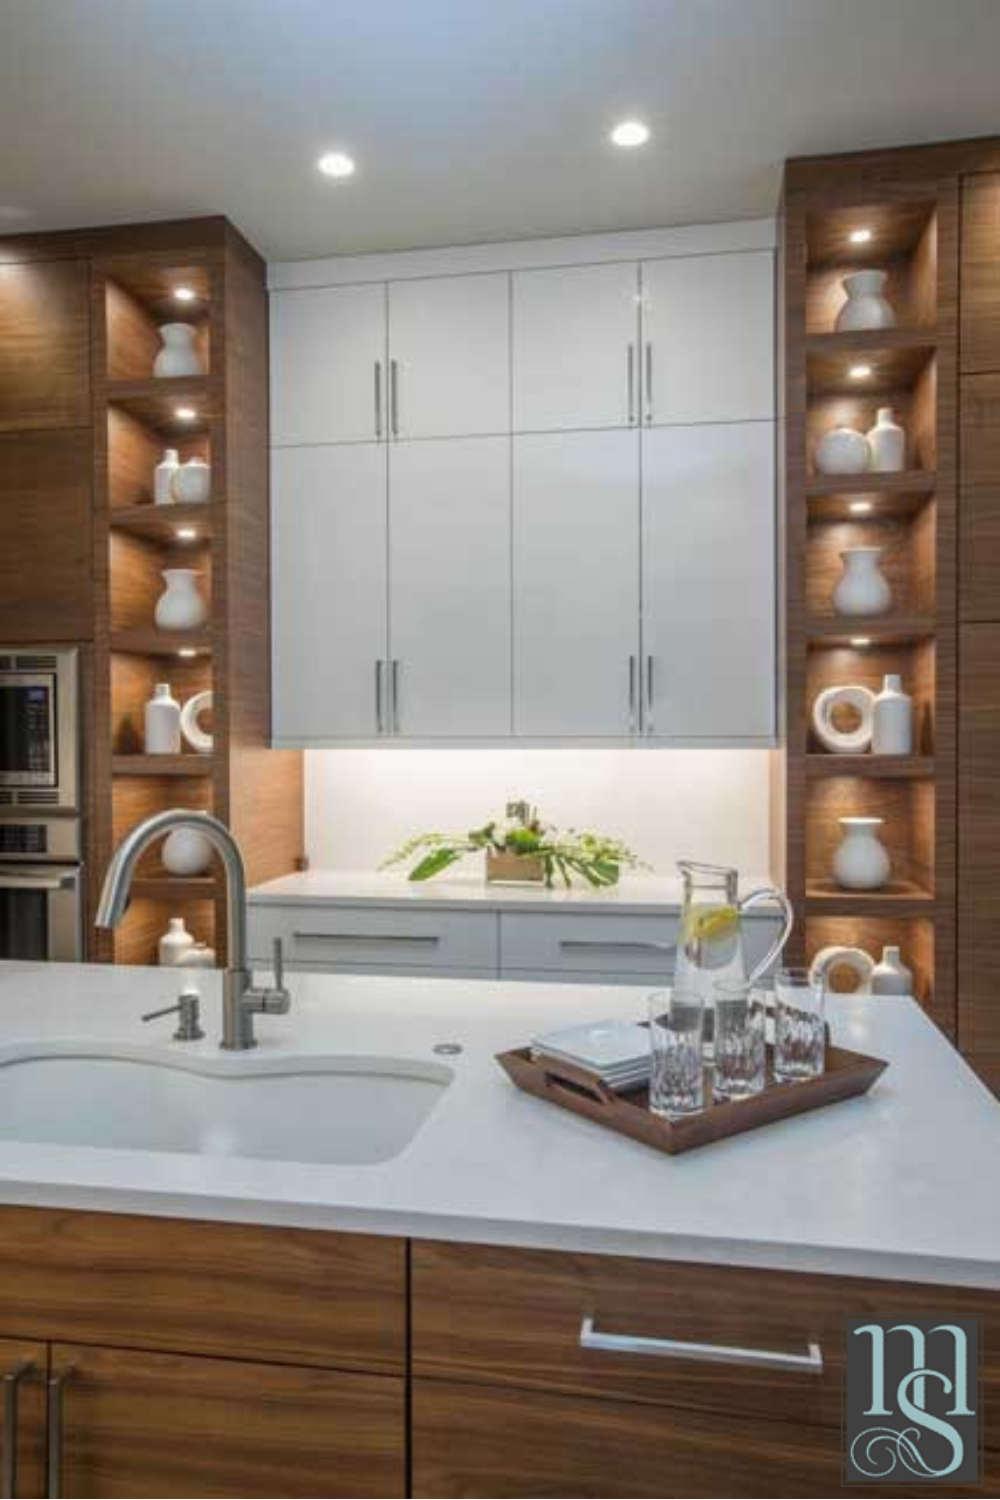 Contemporary Kitchen Remodel Contemporary Kitchen Remodel Kitchen Remodel Contemporary Kitchen